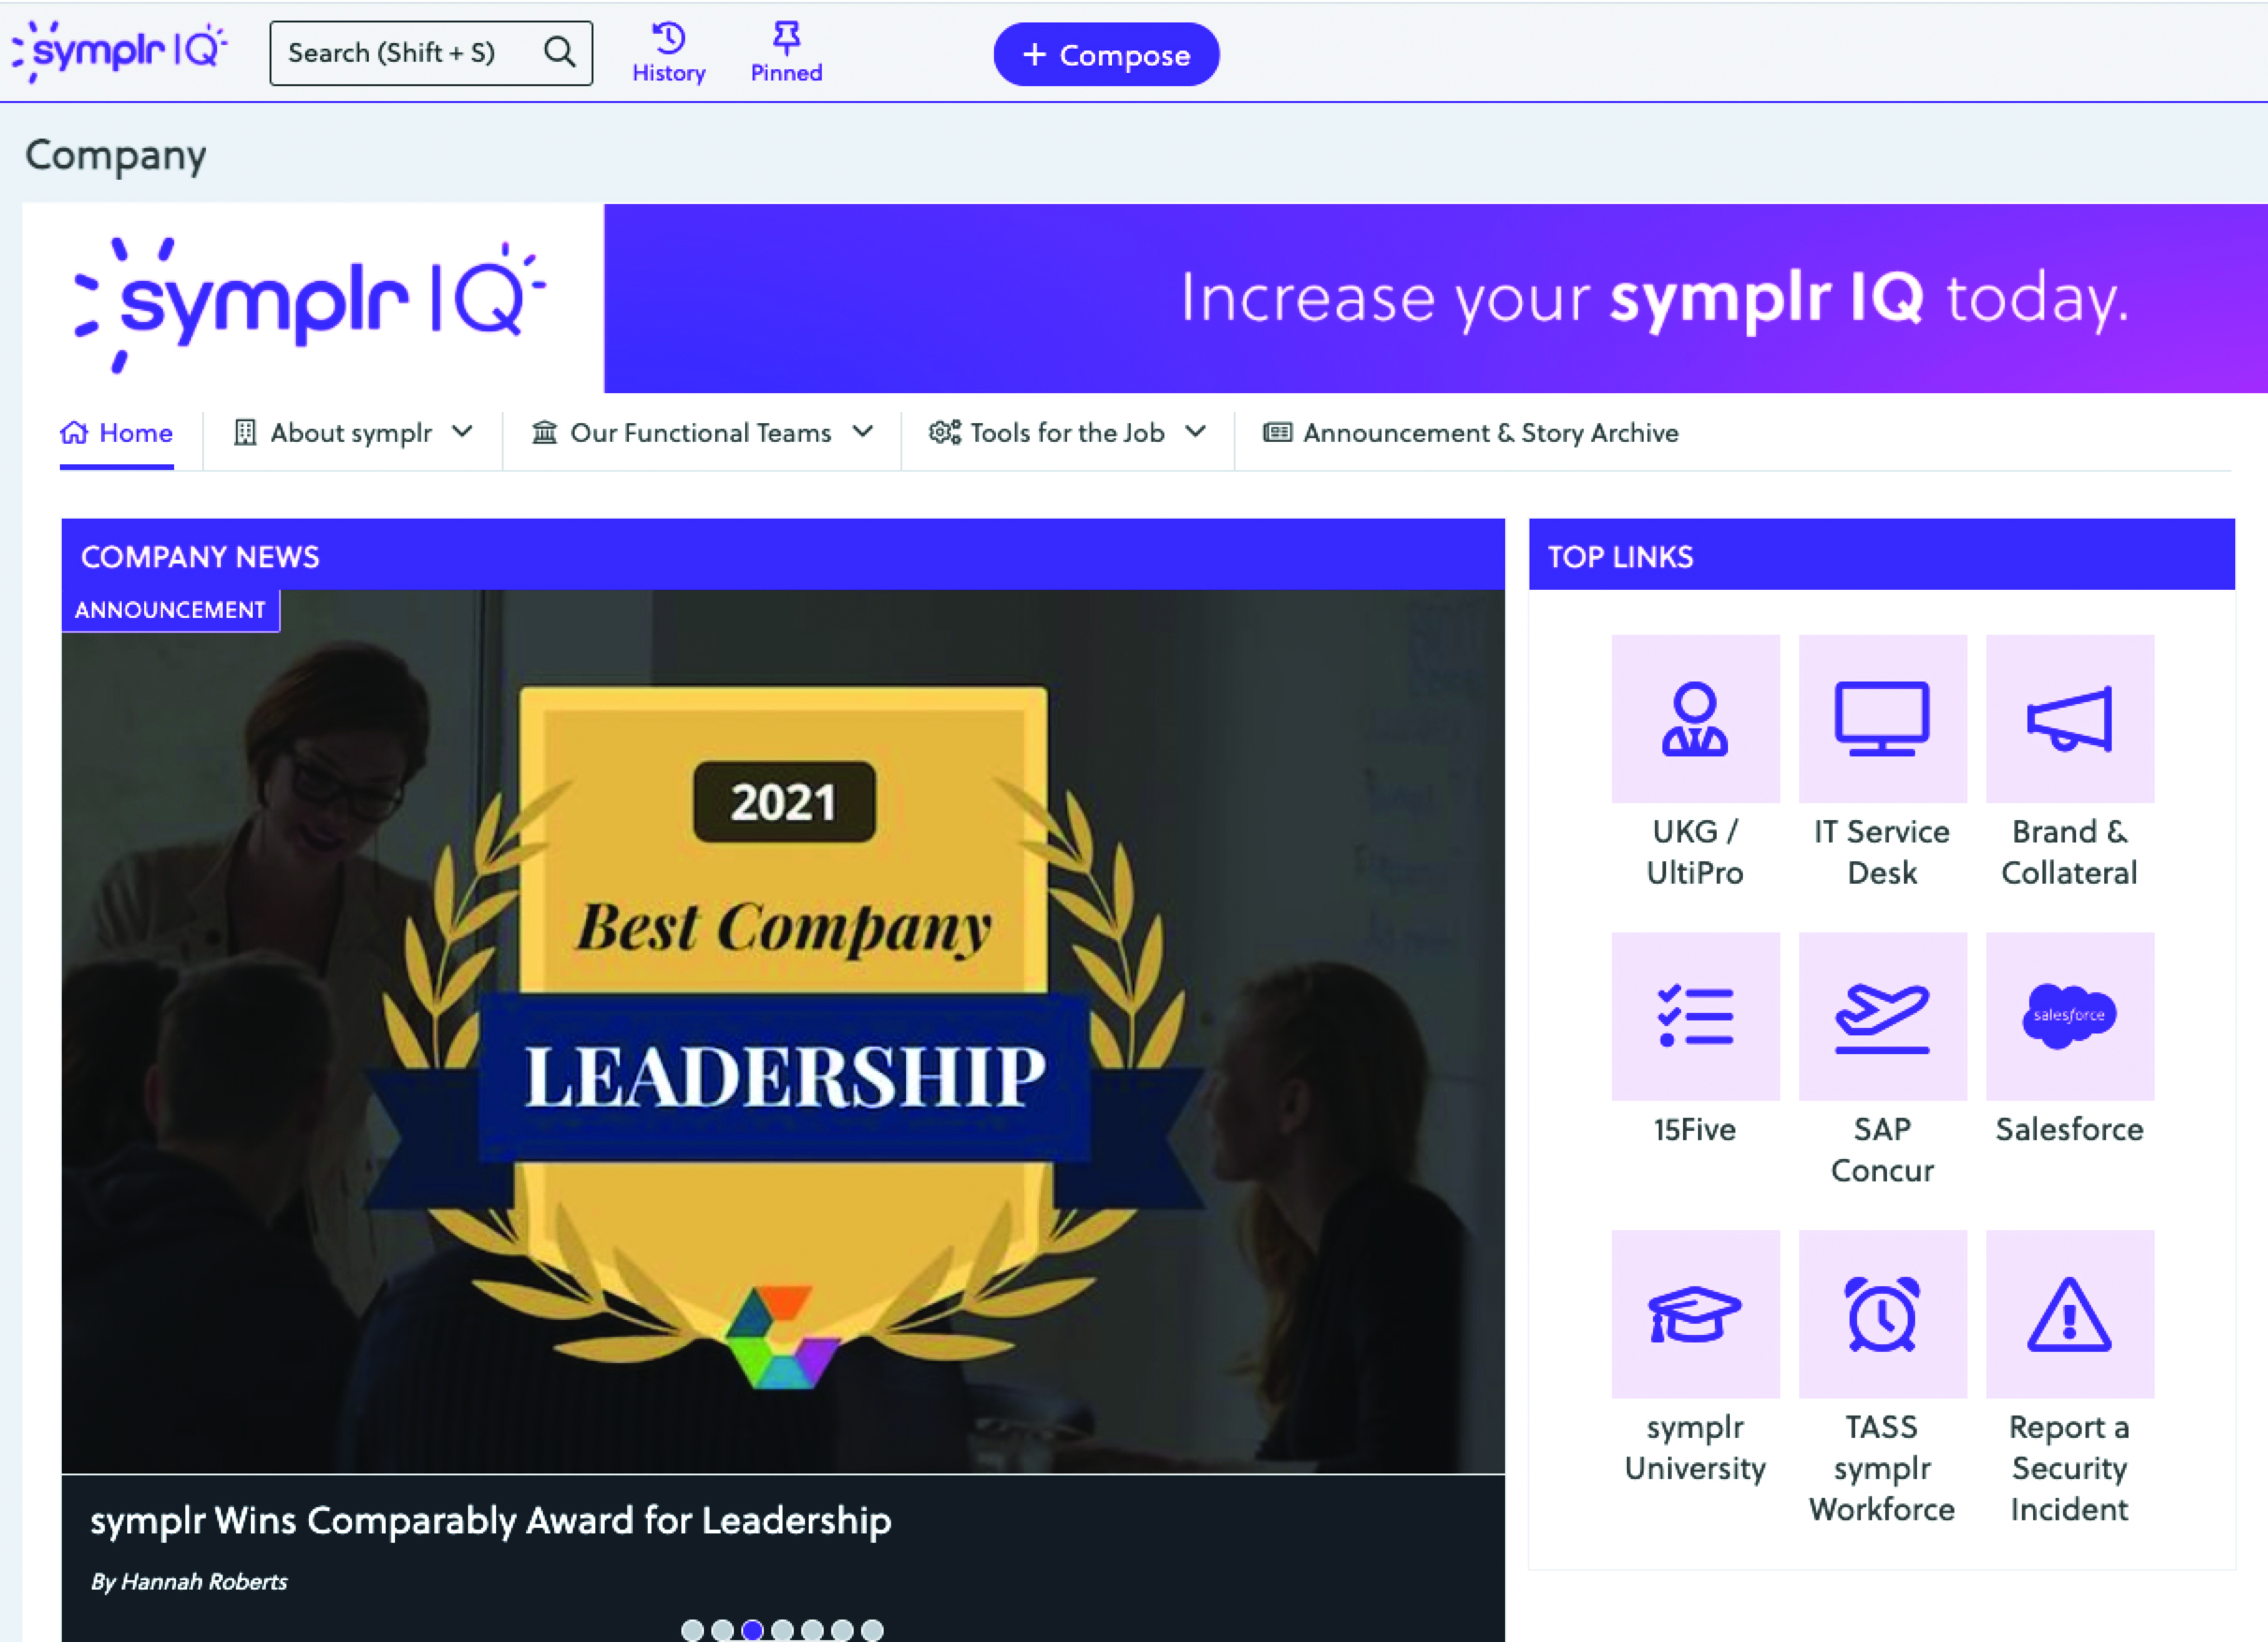 symplr's company intranet home page